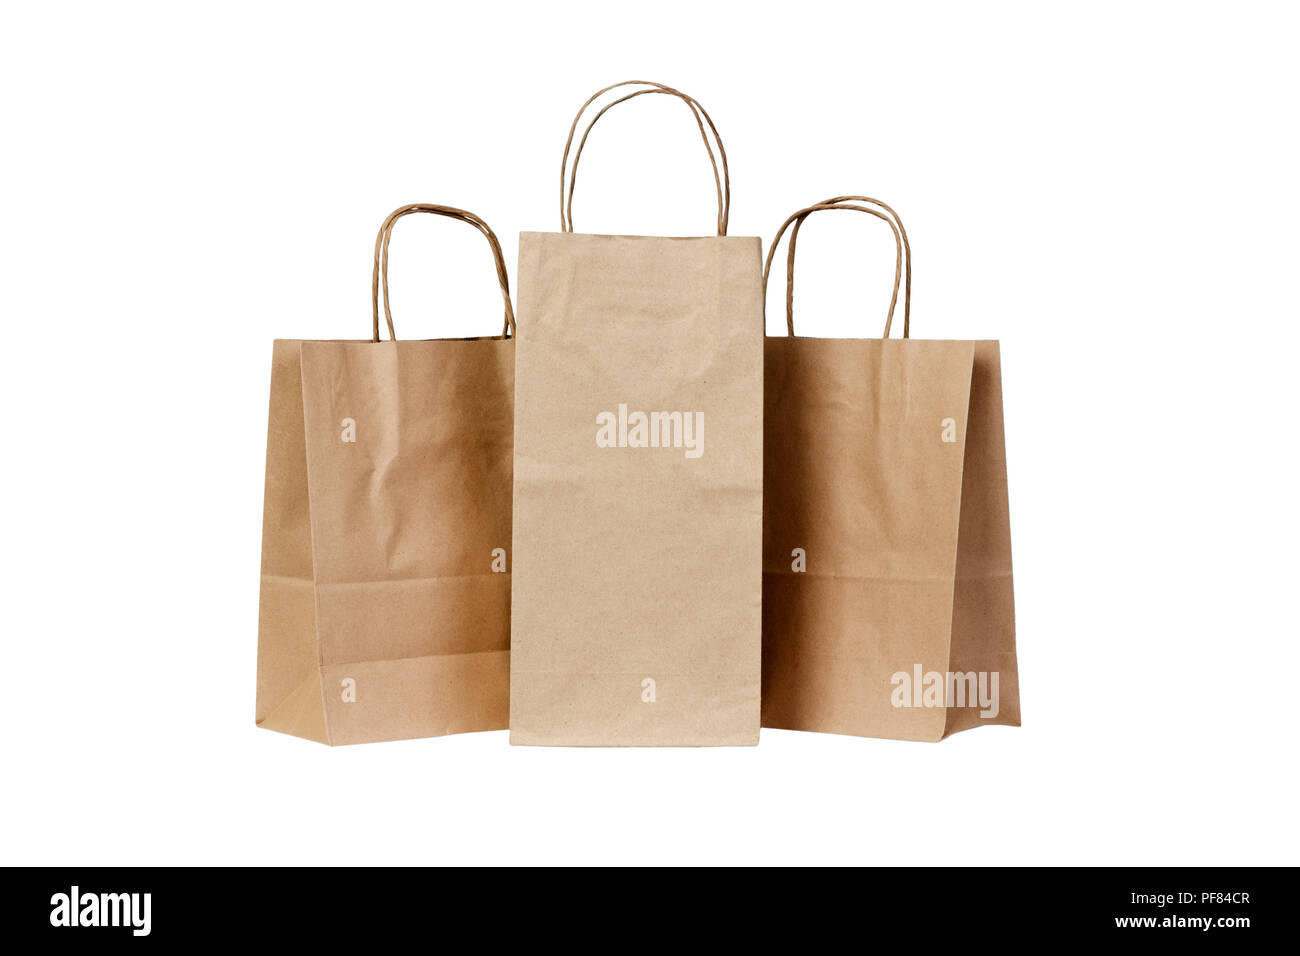 Recyclable paper bags isolated on white background. - Stock Image